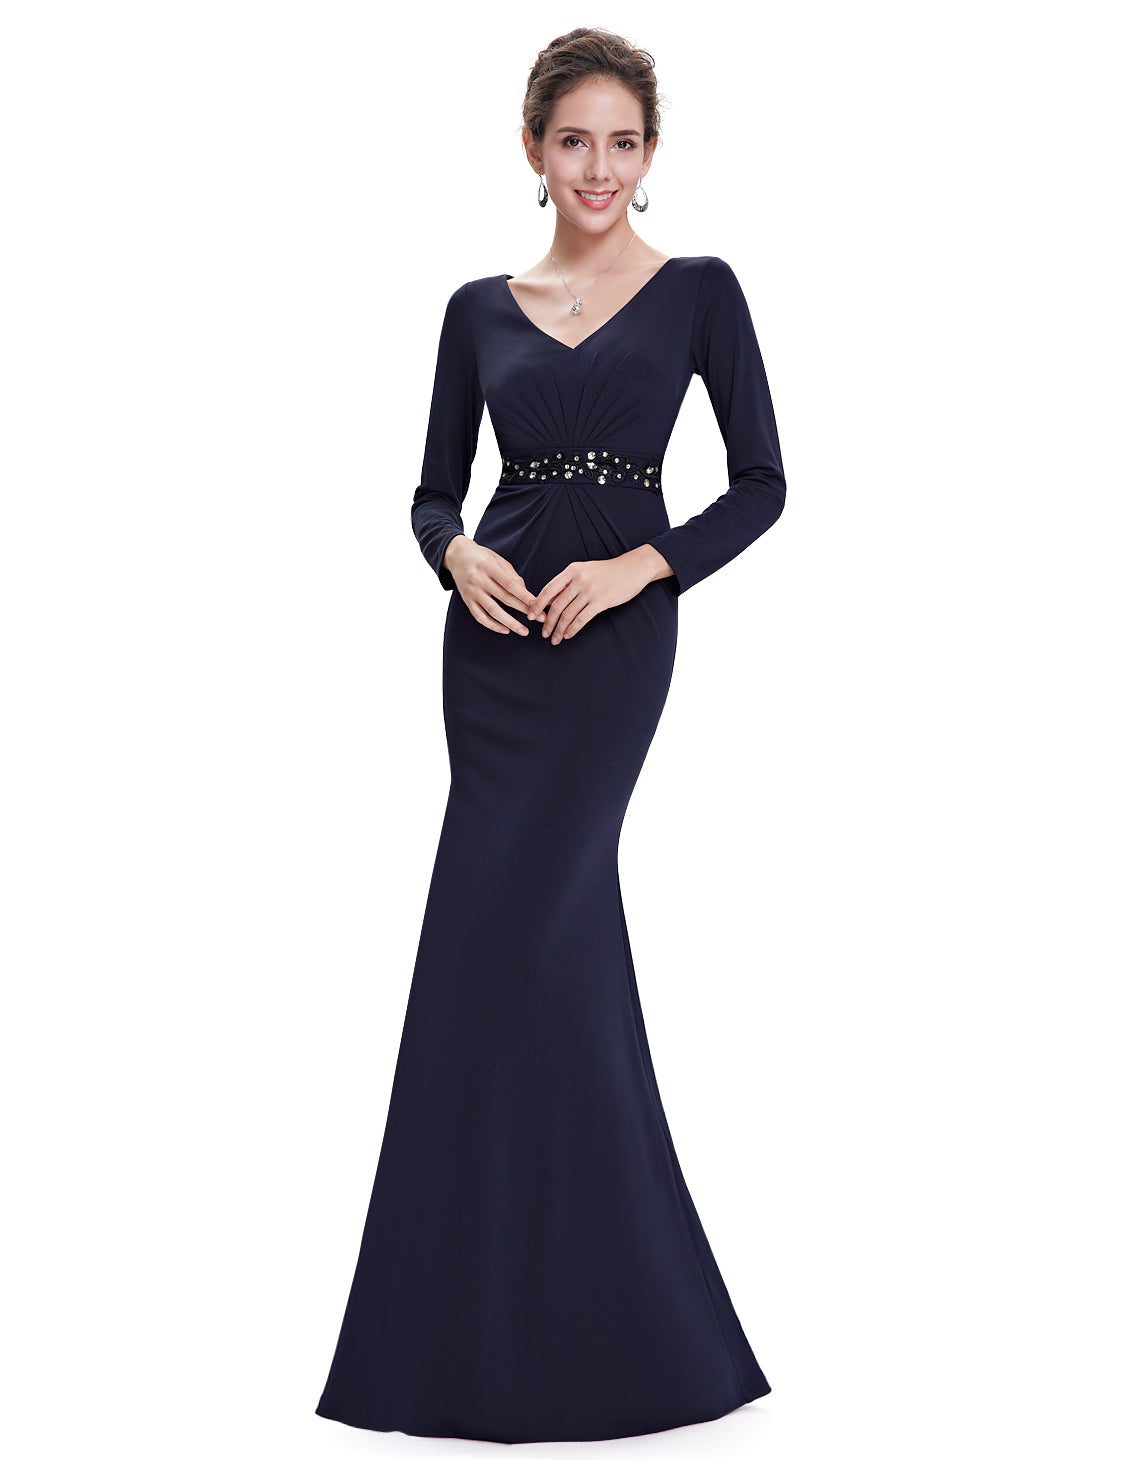 Obeige Elegant Navy V-neck Ruched Long Sleeve Evening Dress